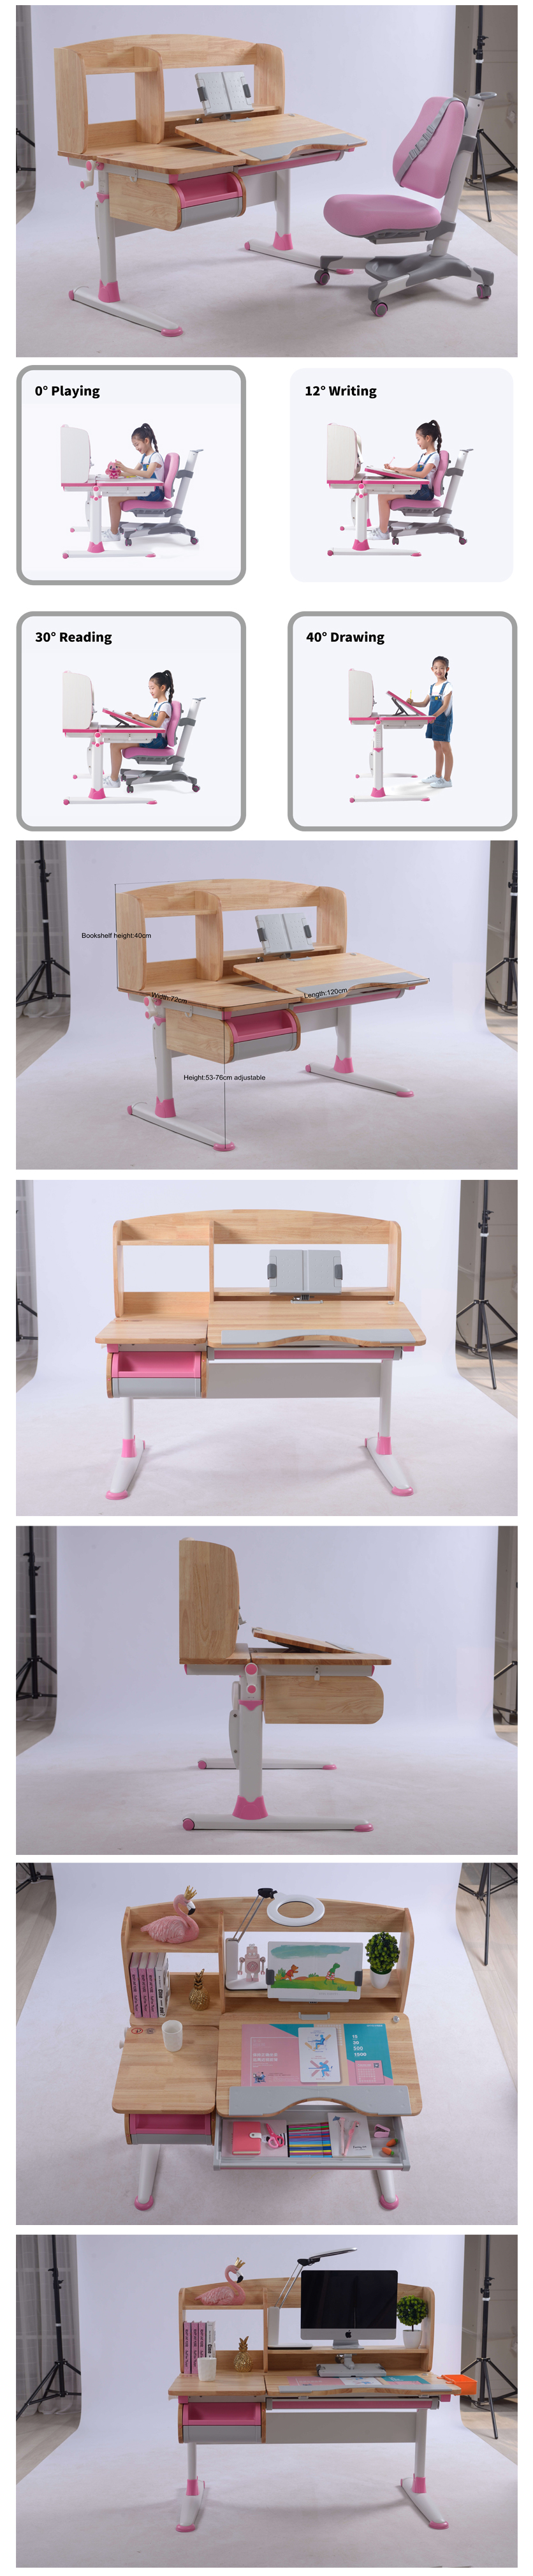 Hot Selling School Chairs And Table For Kids And Student